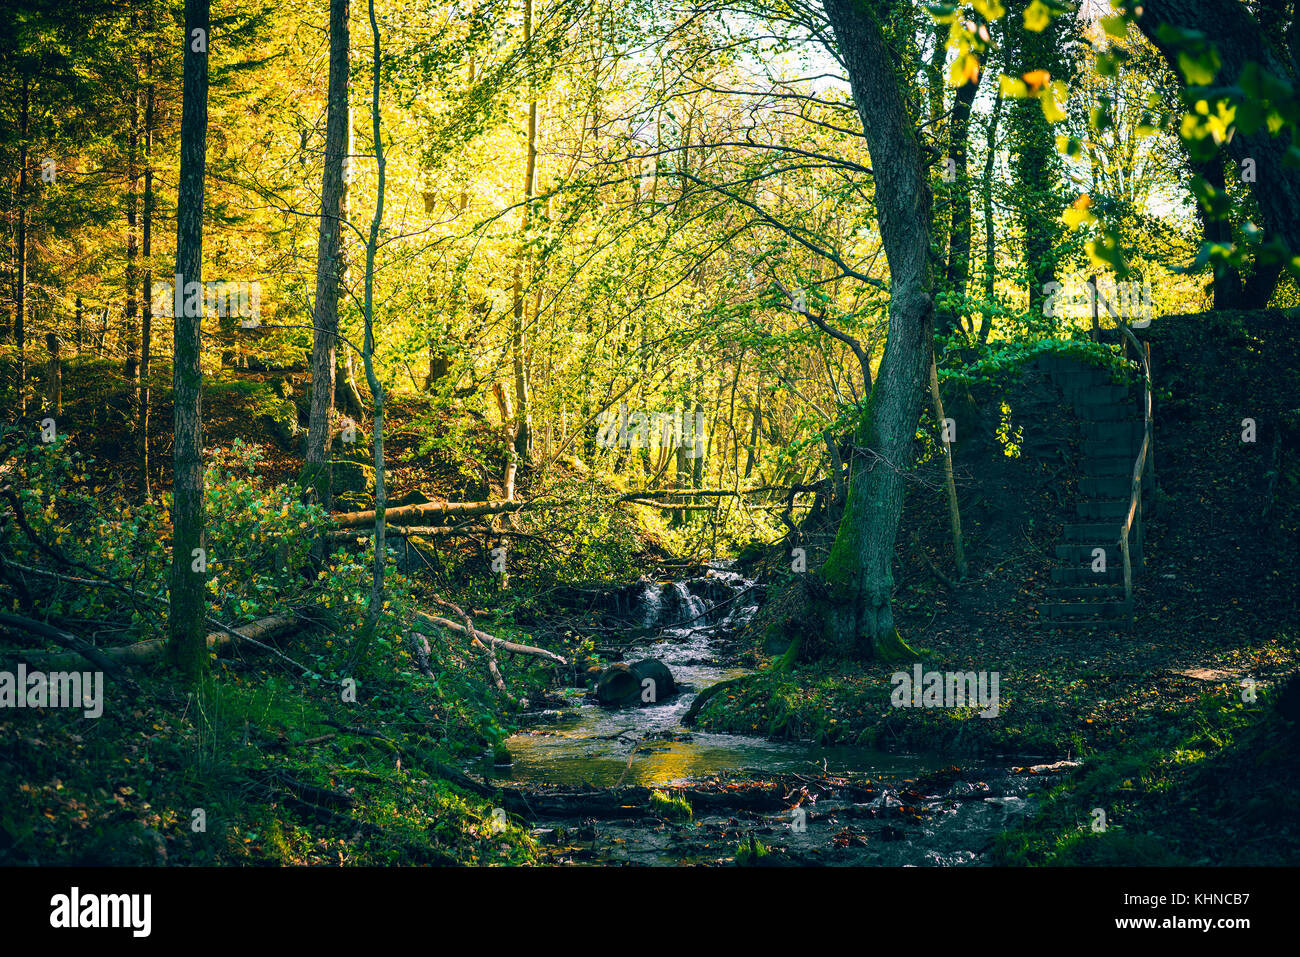 Small river in a forest with colorful trees in autumn colors in the fall - Stock Image